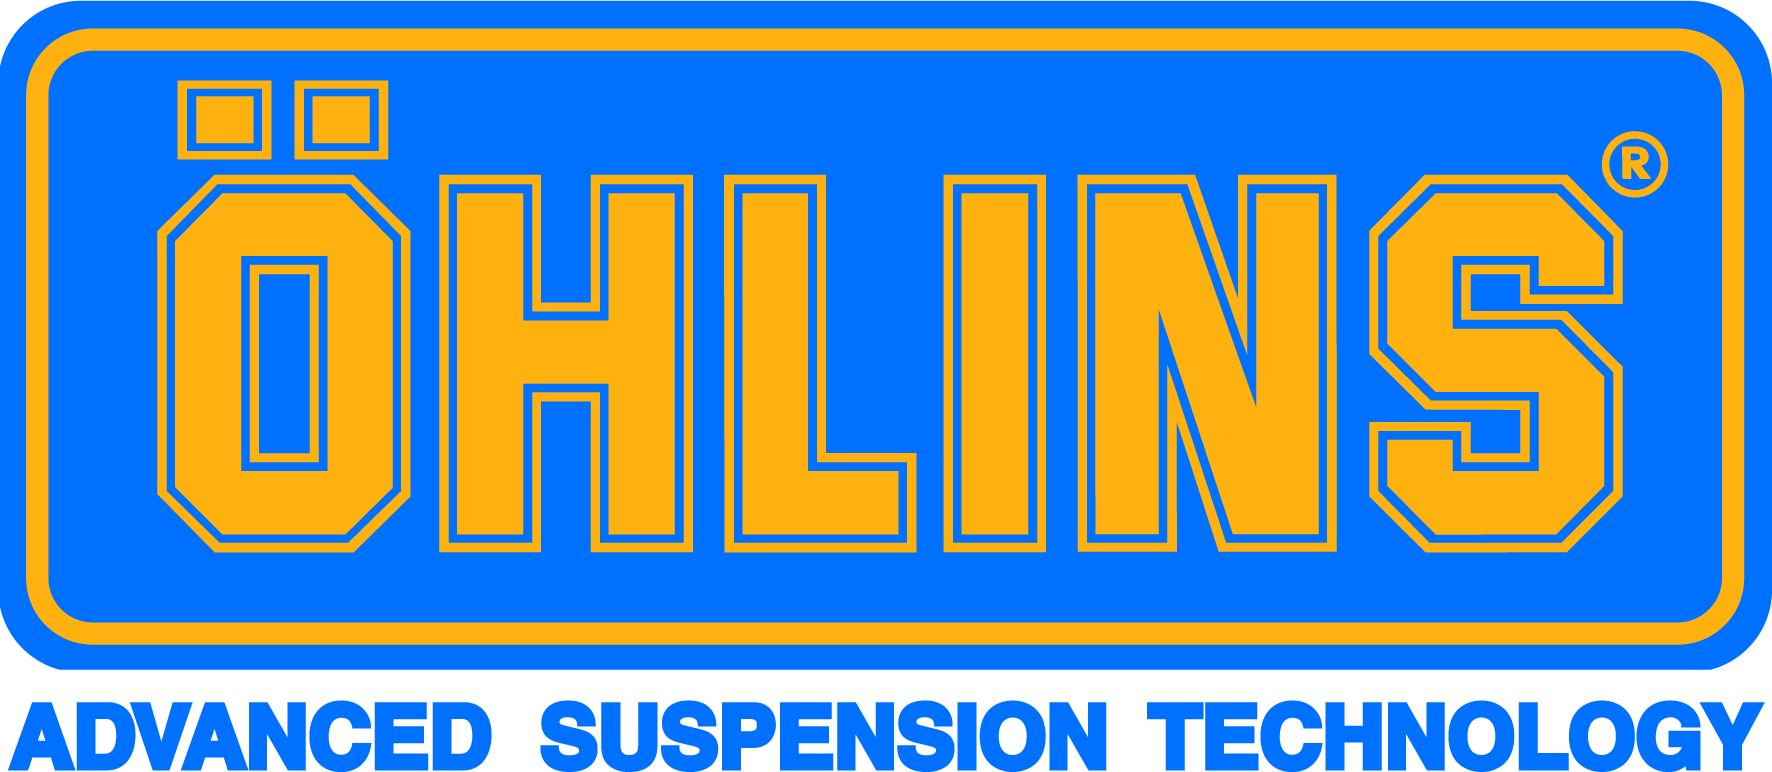 Ohlins motorbike fork & suspension rebuilds